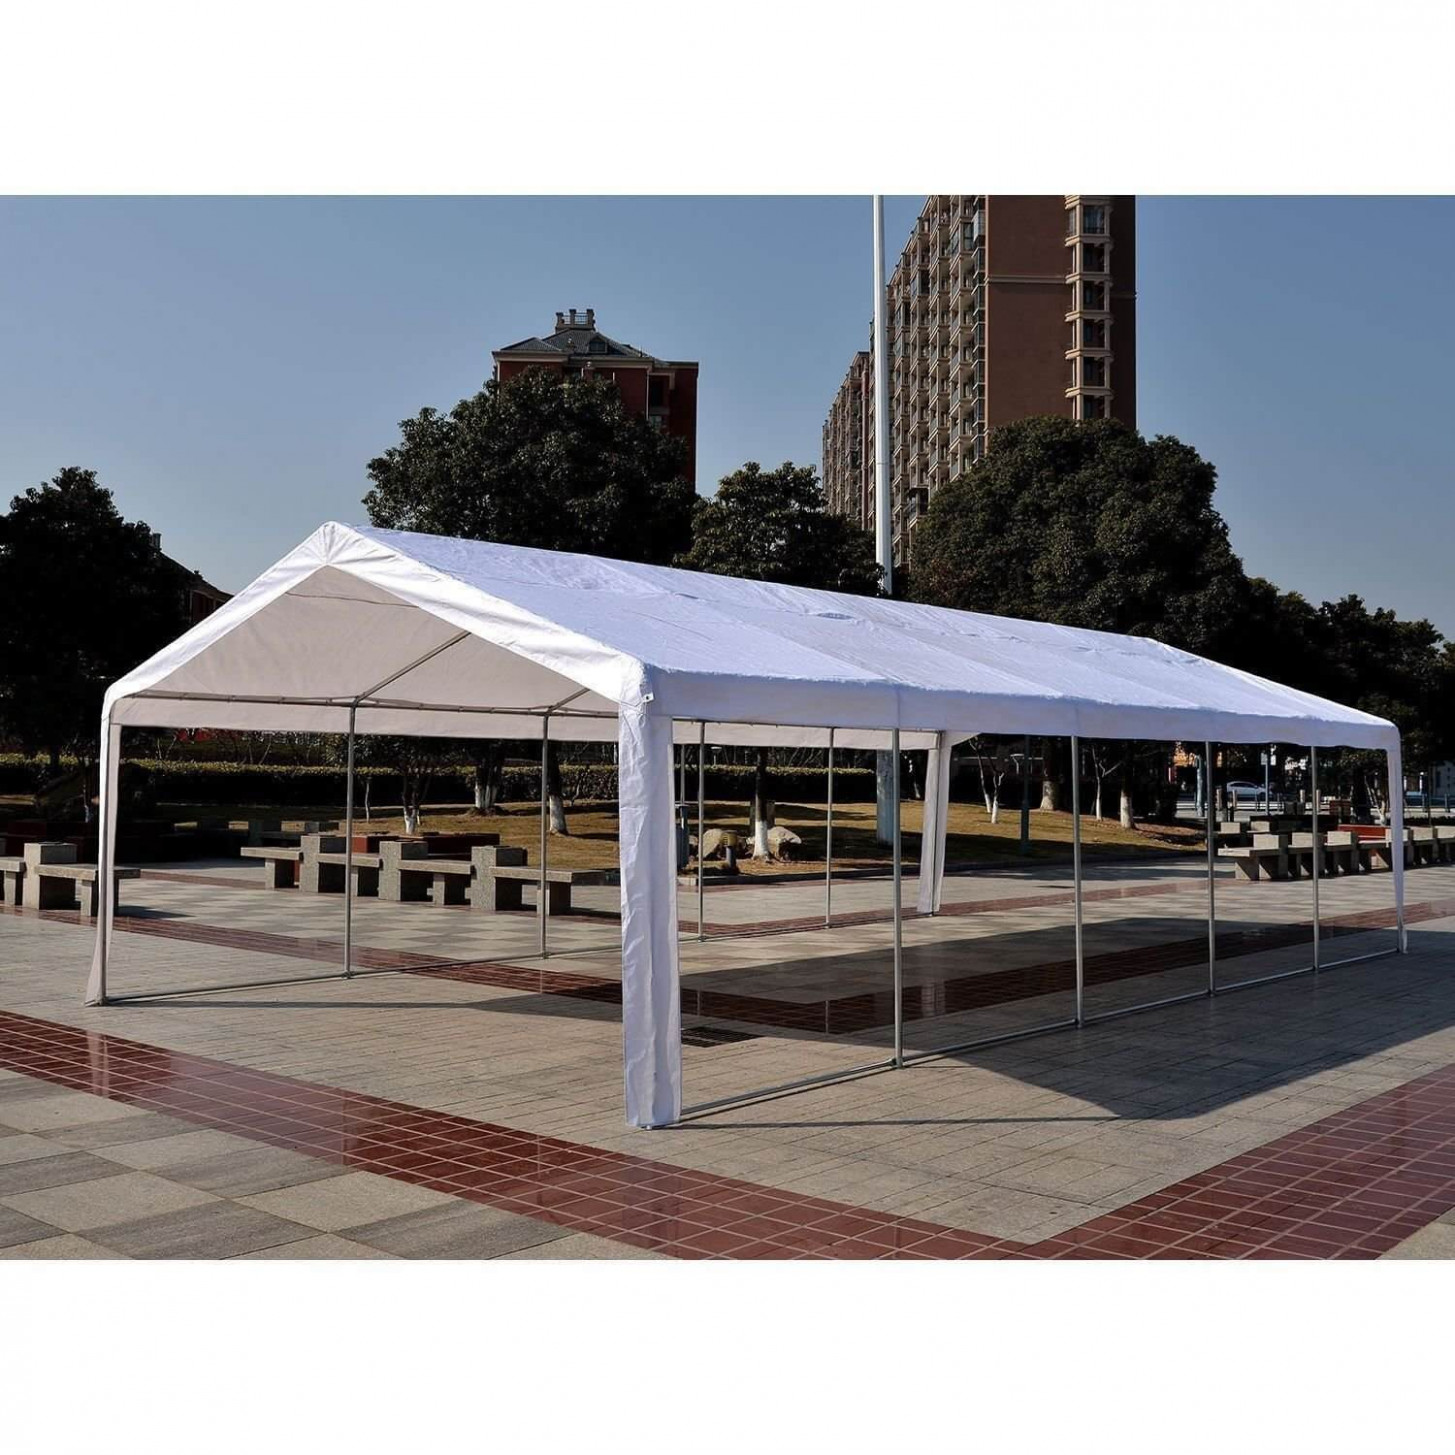 Outsunny 10'W X 10'D Outdoor Carport Canopy Party Tent With Sidewalls White Carport Party Ideas